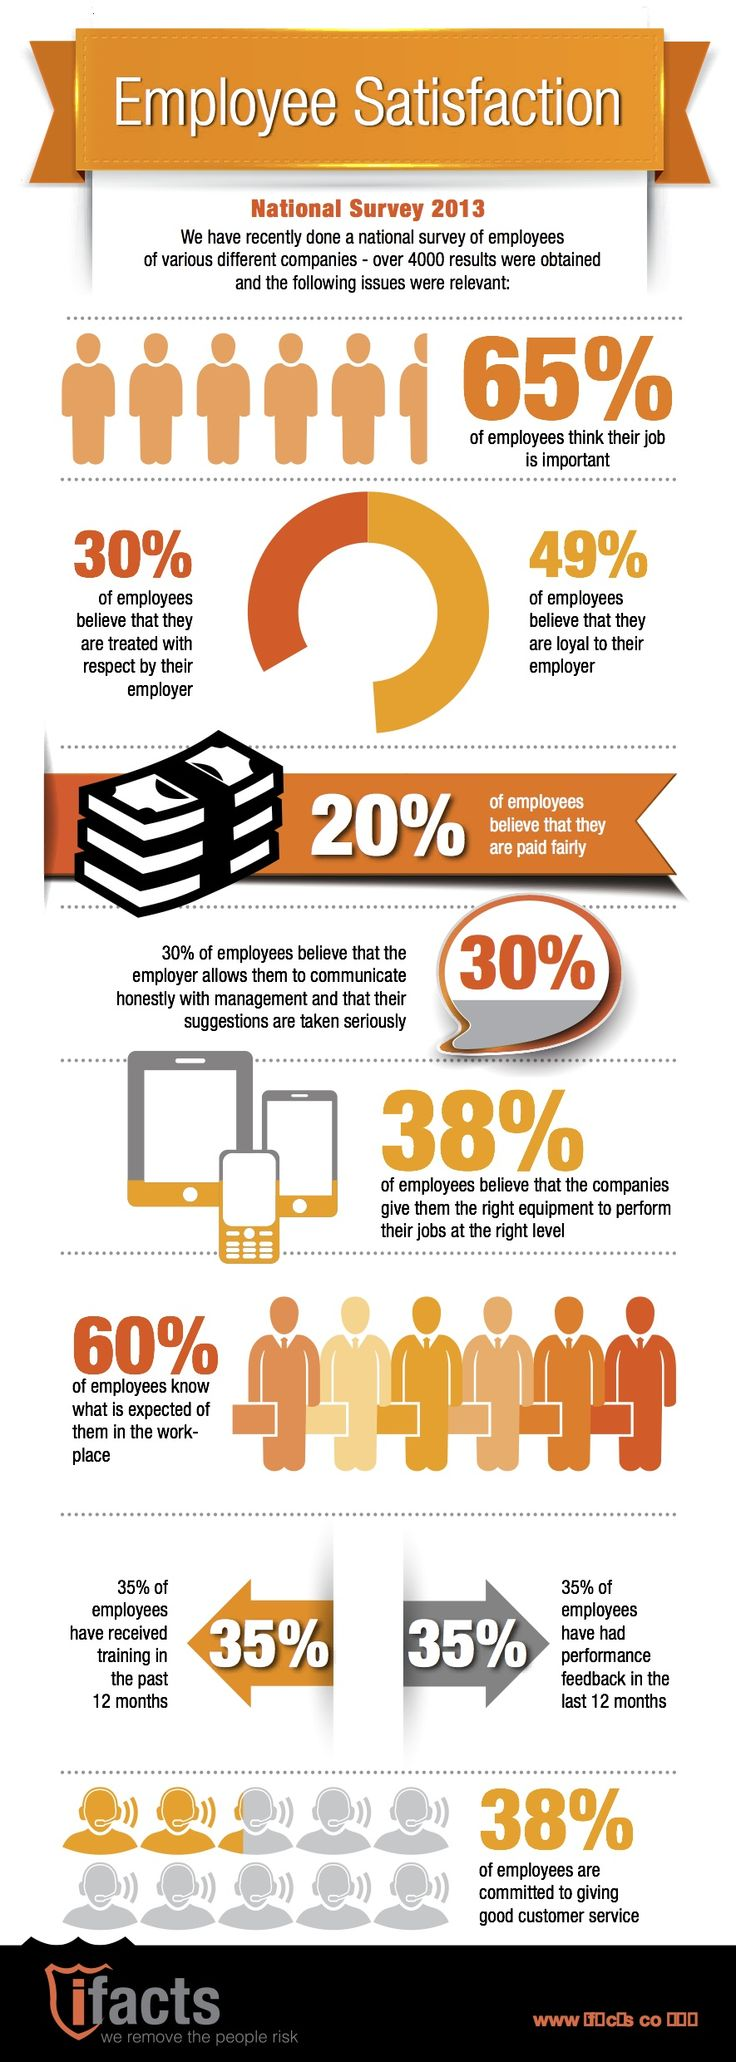 iFacts infographics showing employee satisfaction where only 30% of employees believe that they are treated with respect by their employers